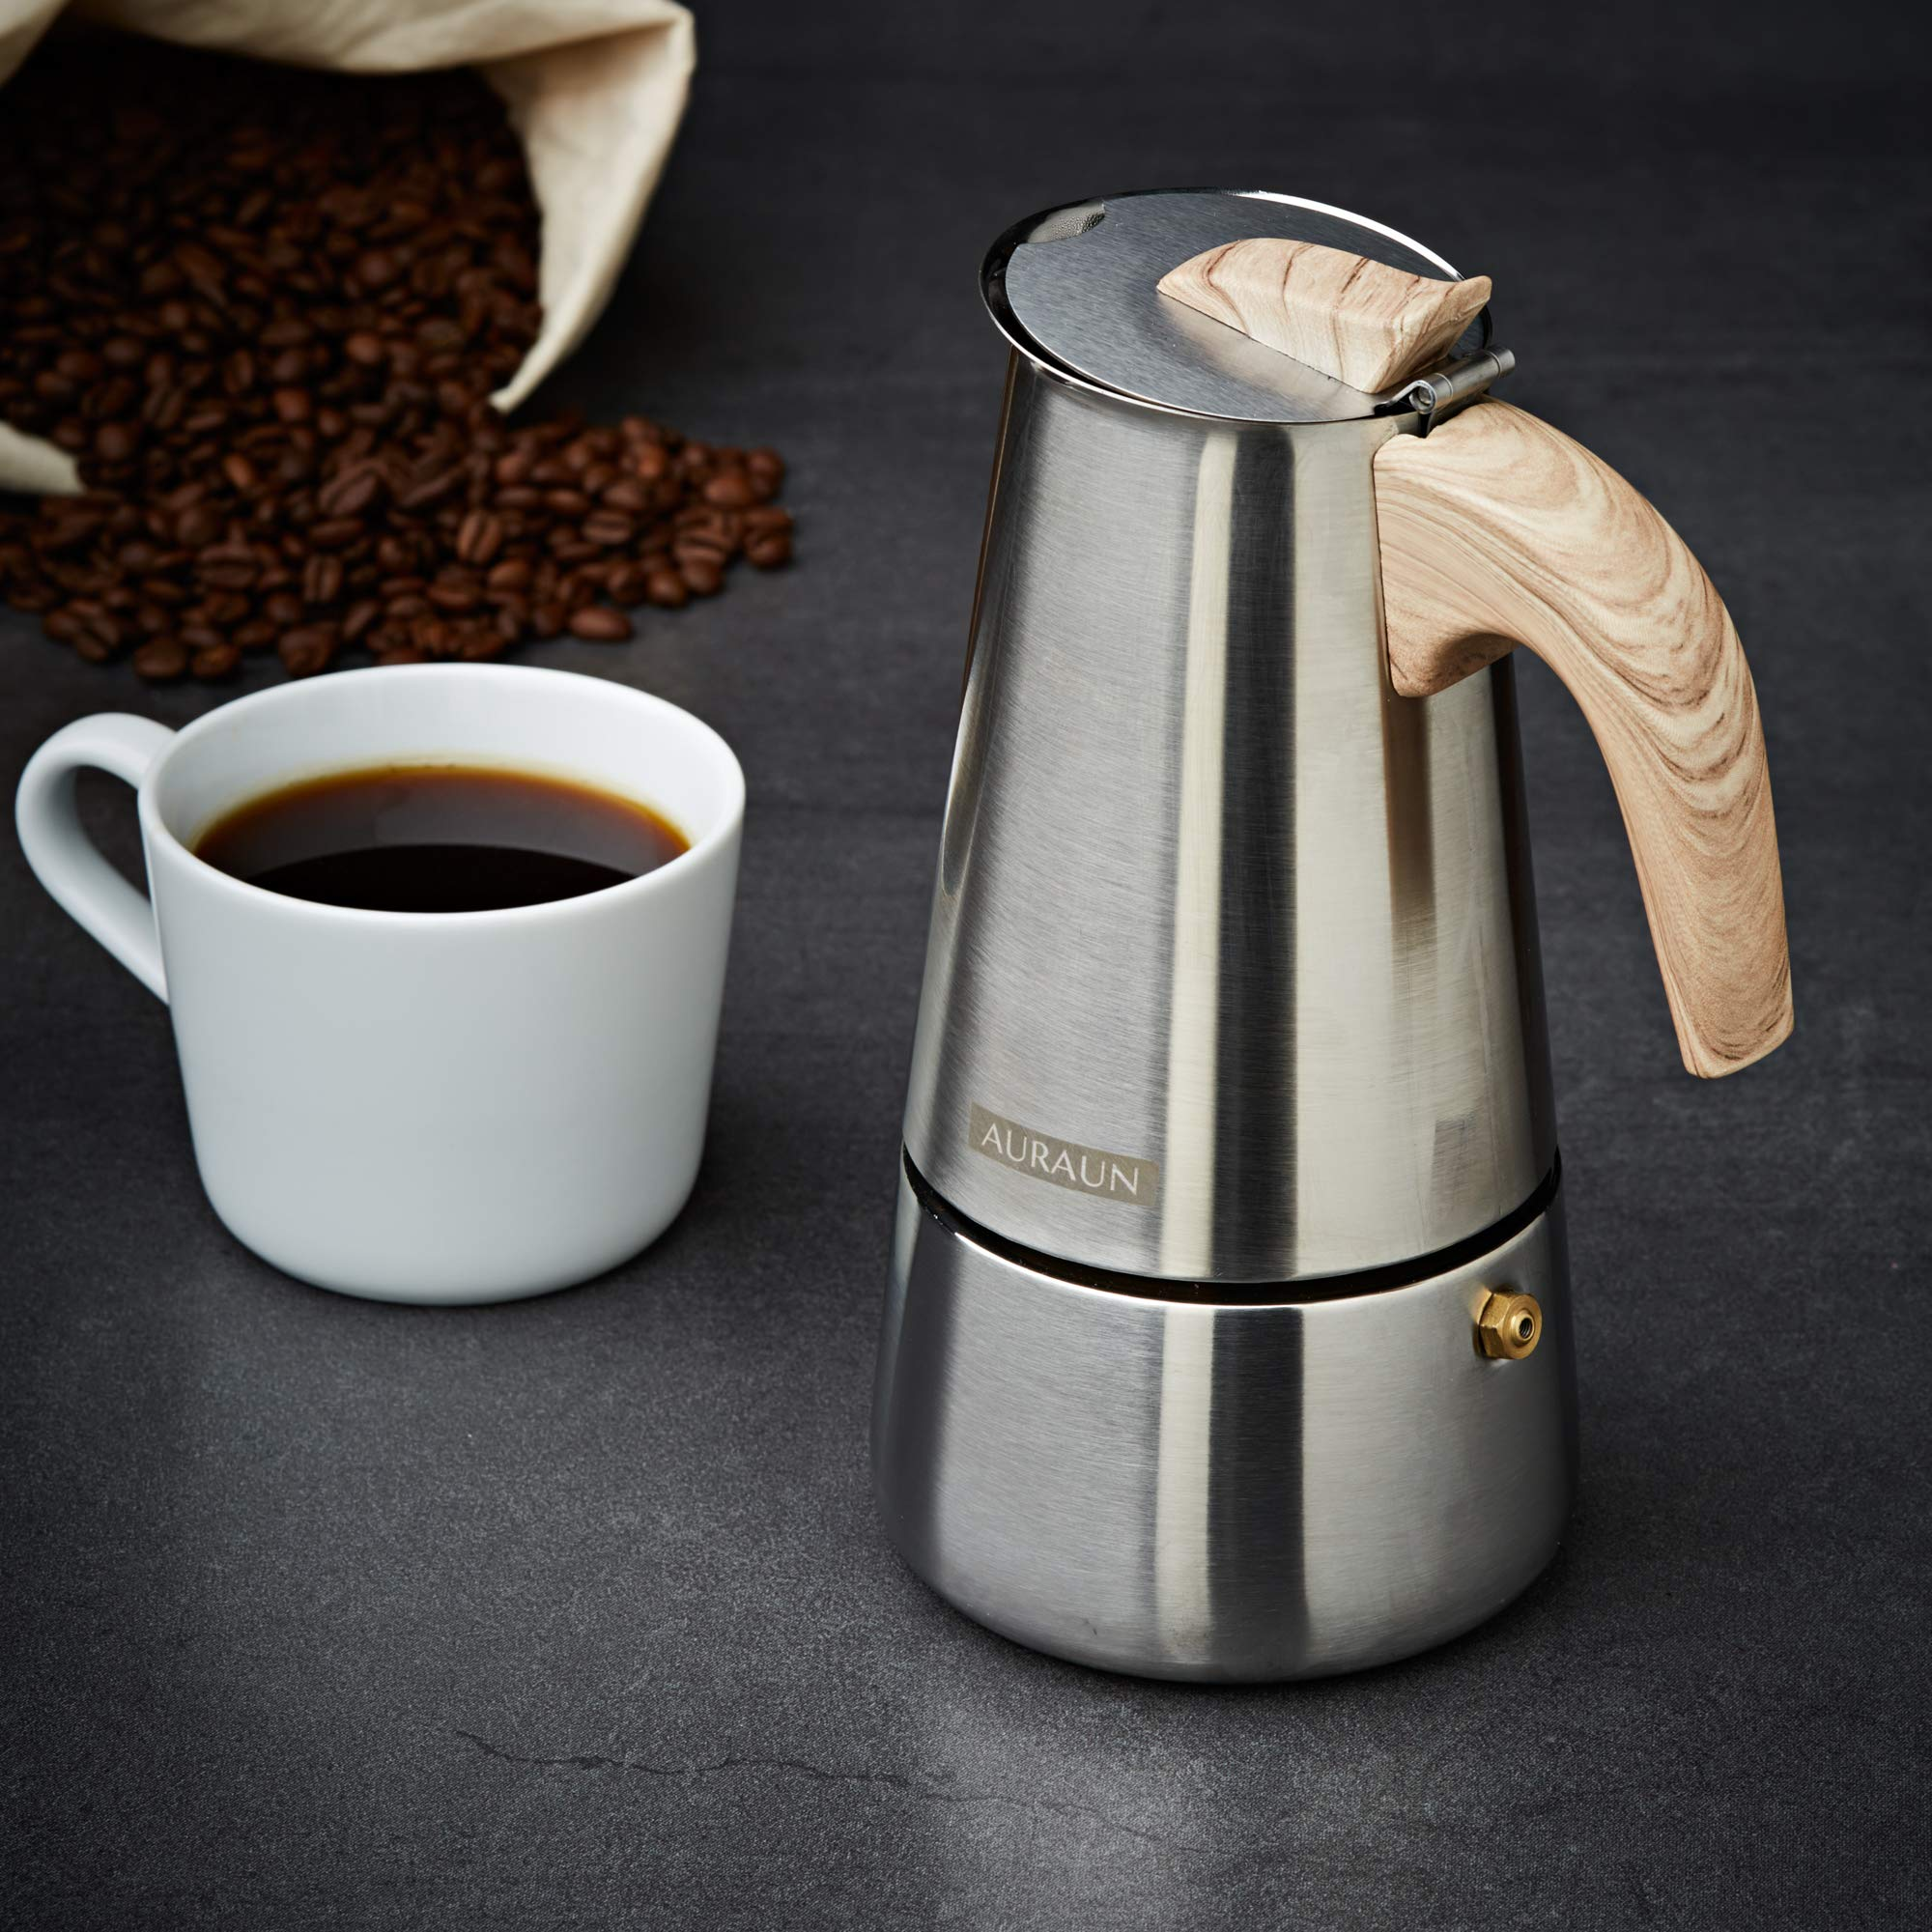 Stainless Steel Stovetop Espresso Maker 6-Cup, Wooden soft cool touch handle, Matt Finish, Classic & Contemporary design Great Italian Style Moka Pot, Makes Delicious Coffee, Simple Operation & Care. by Auraun